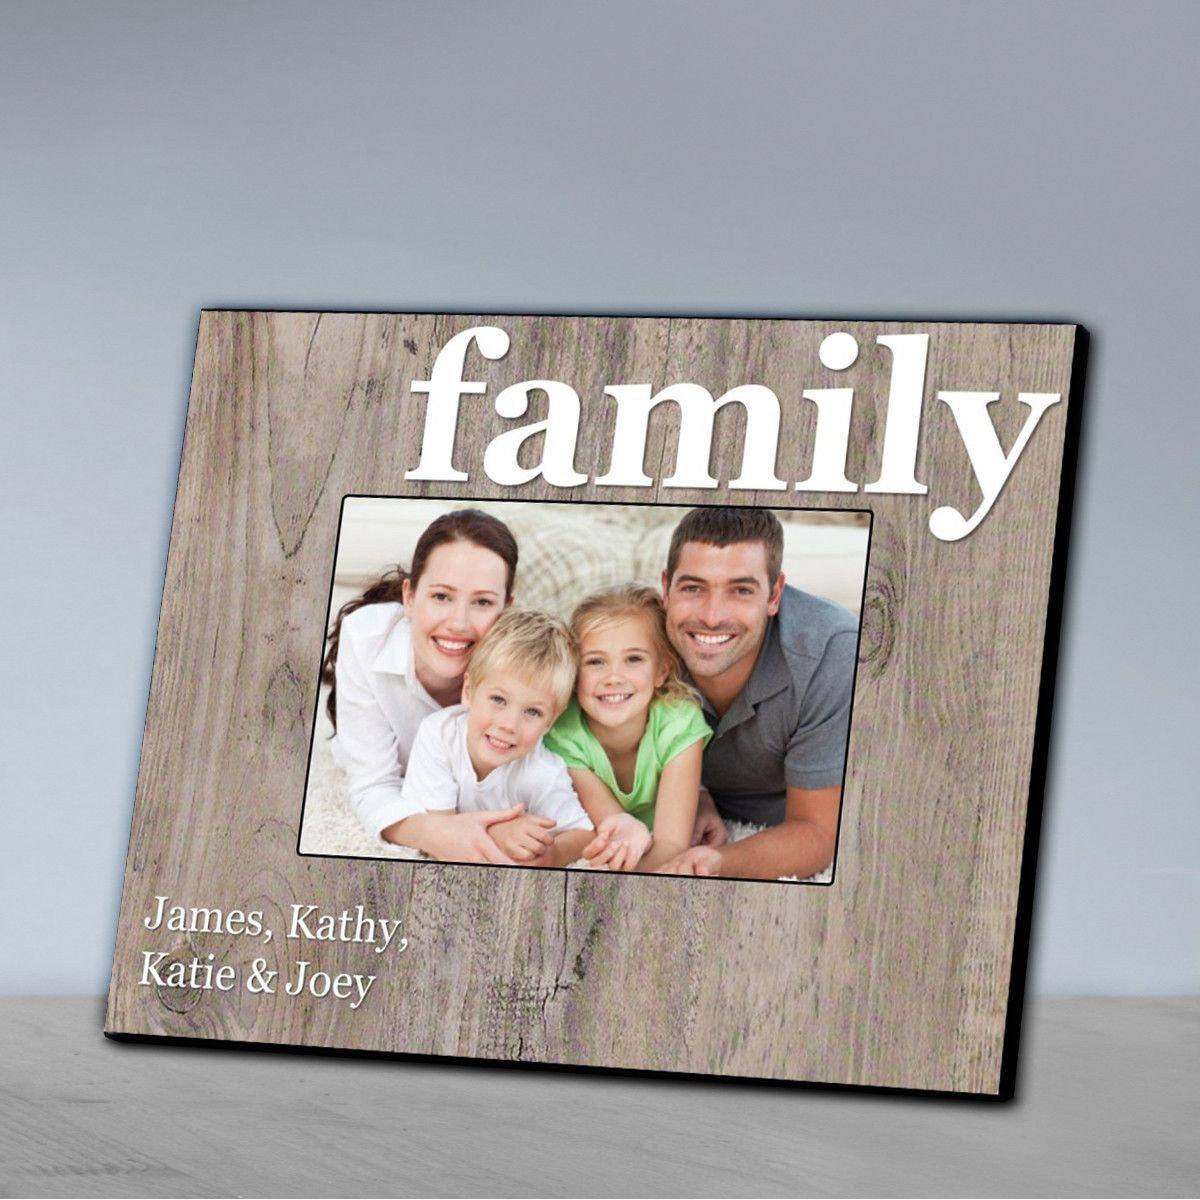 Personalized Family Picture Frame - All